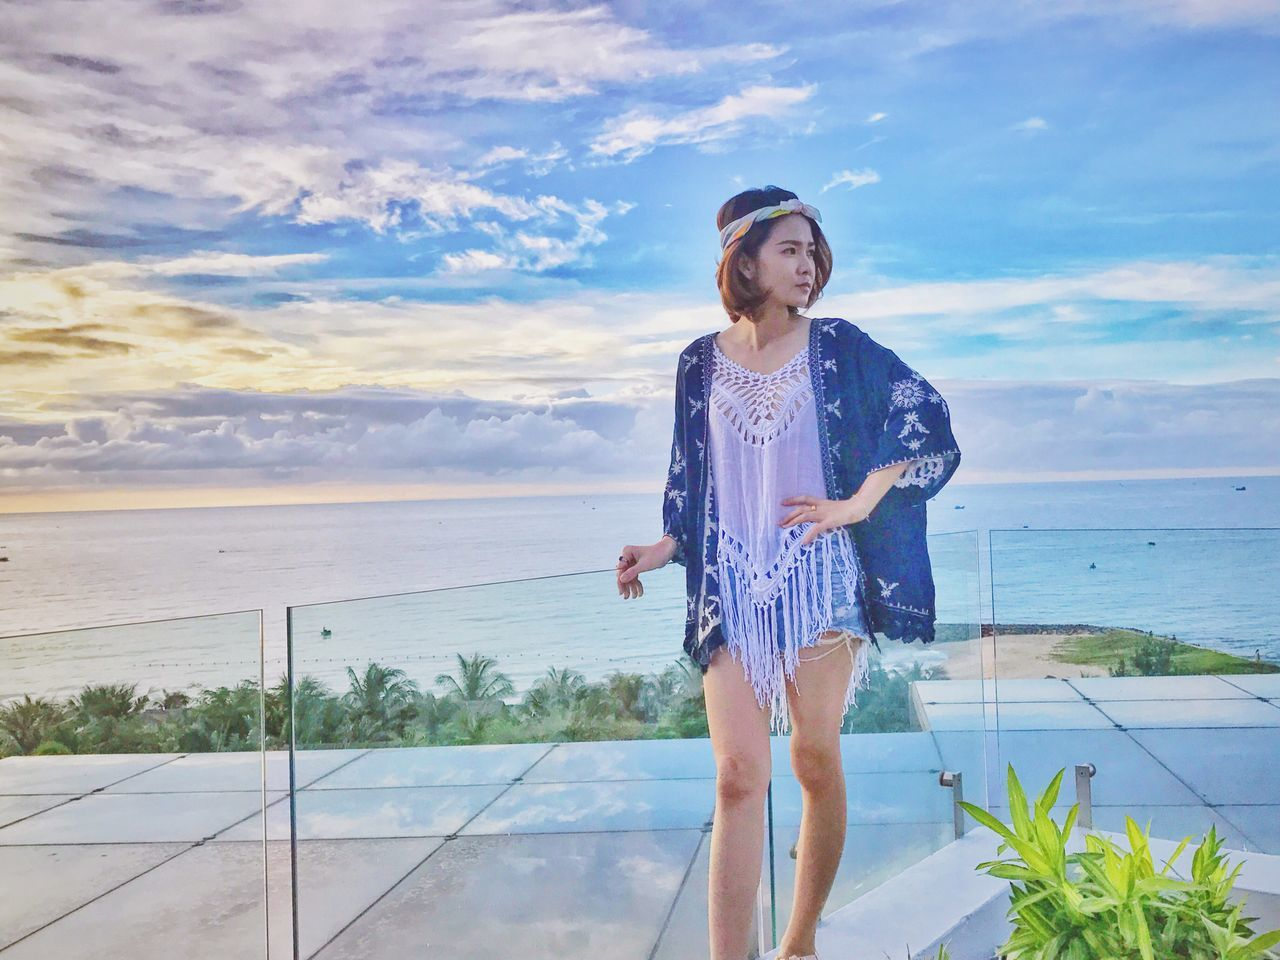 real people, sky, one person, sea, nature, outdoors, cloud - sky, water, standing, leisure activity, day, horizon over water, lifestyles, beauty in nature, front view, scenics, beach, happiness, full length, smiling, vacations, young women, young adult